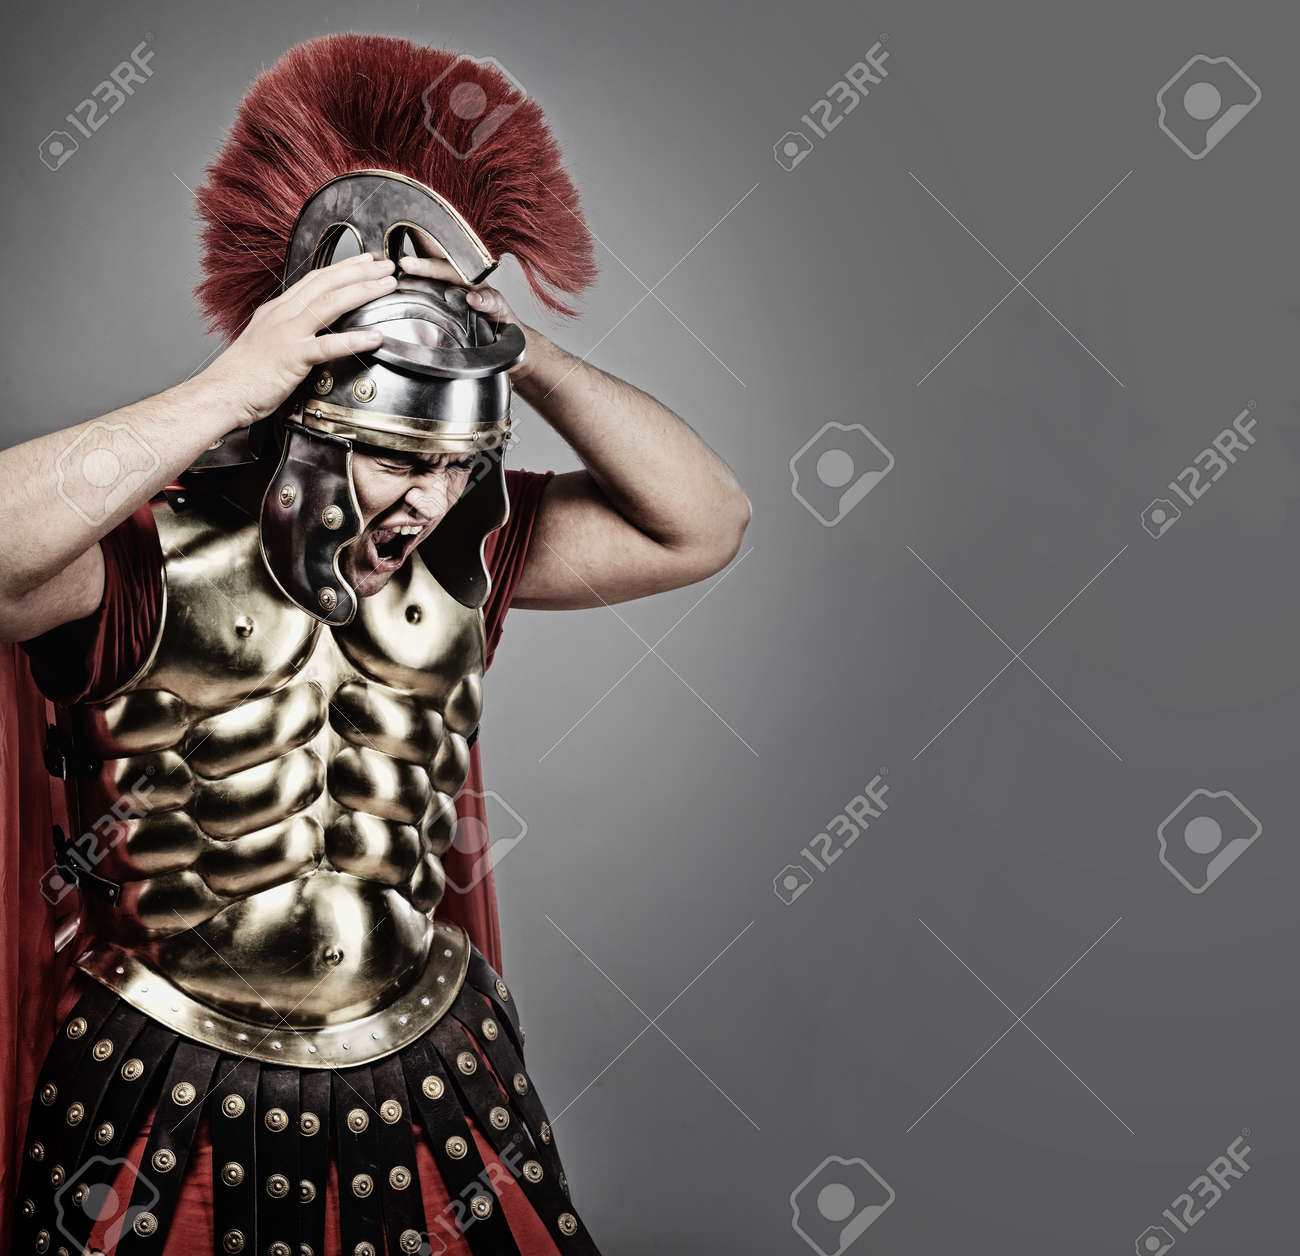 Screaming legionary soldier Stock Photo - 7126000